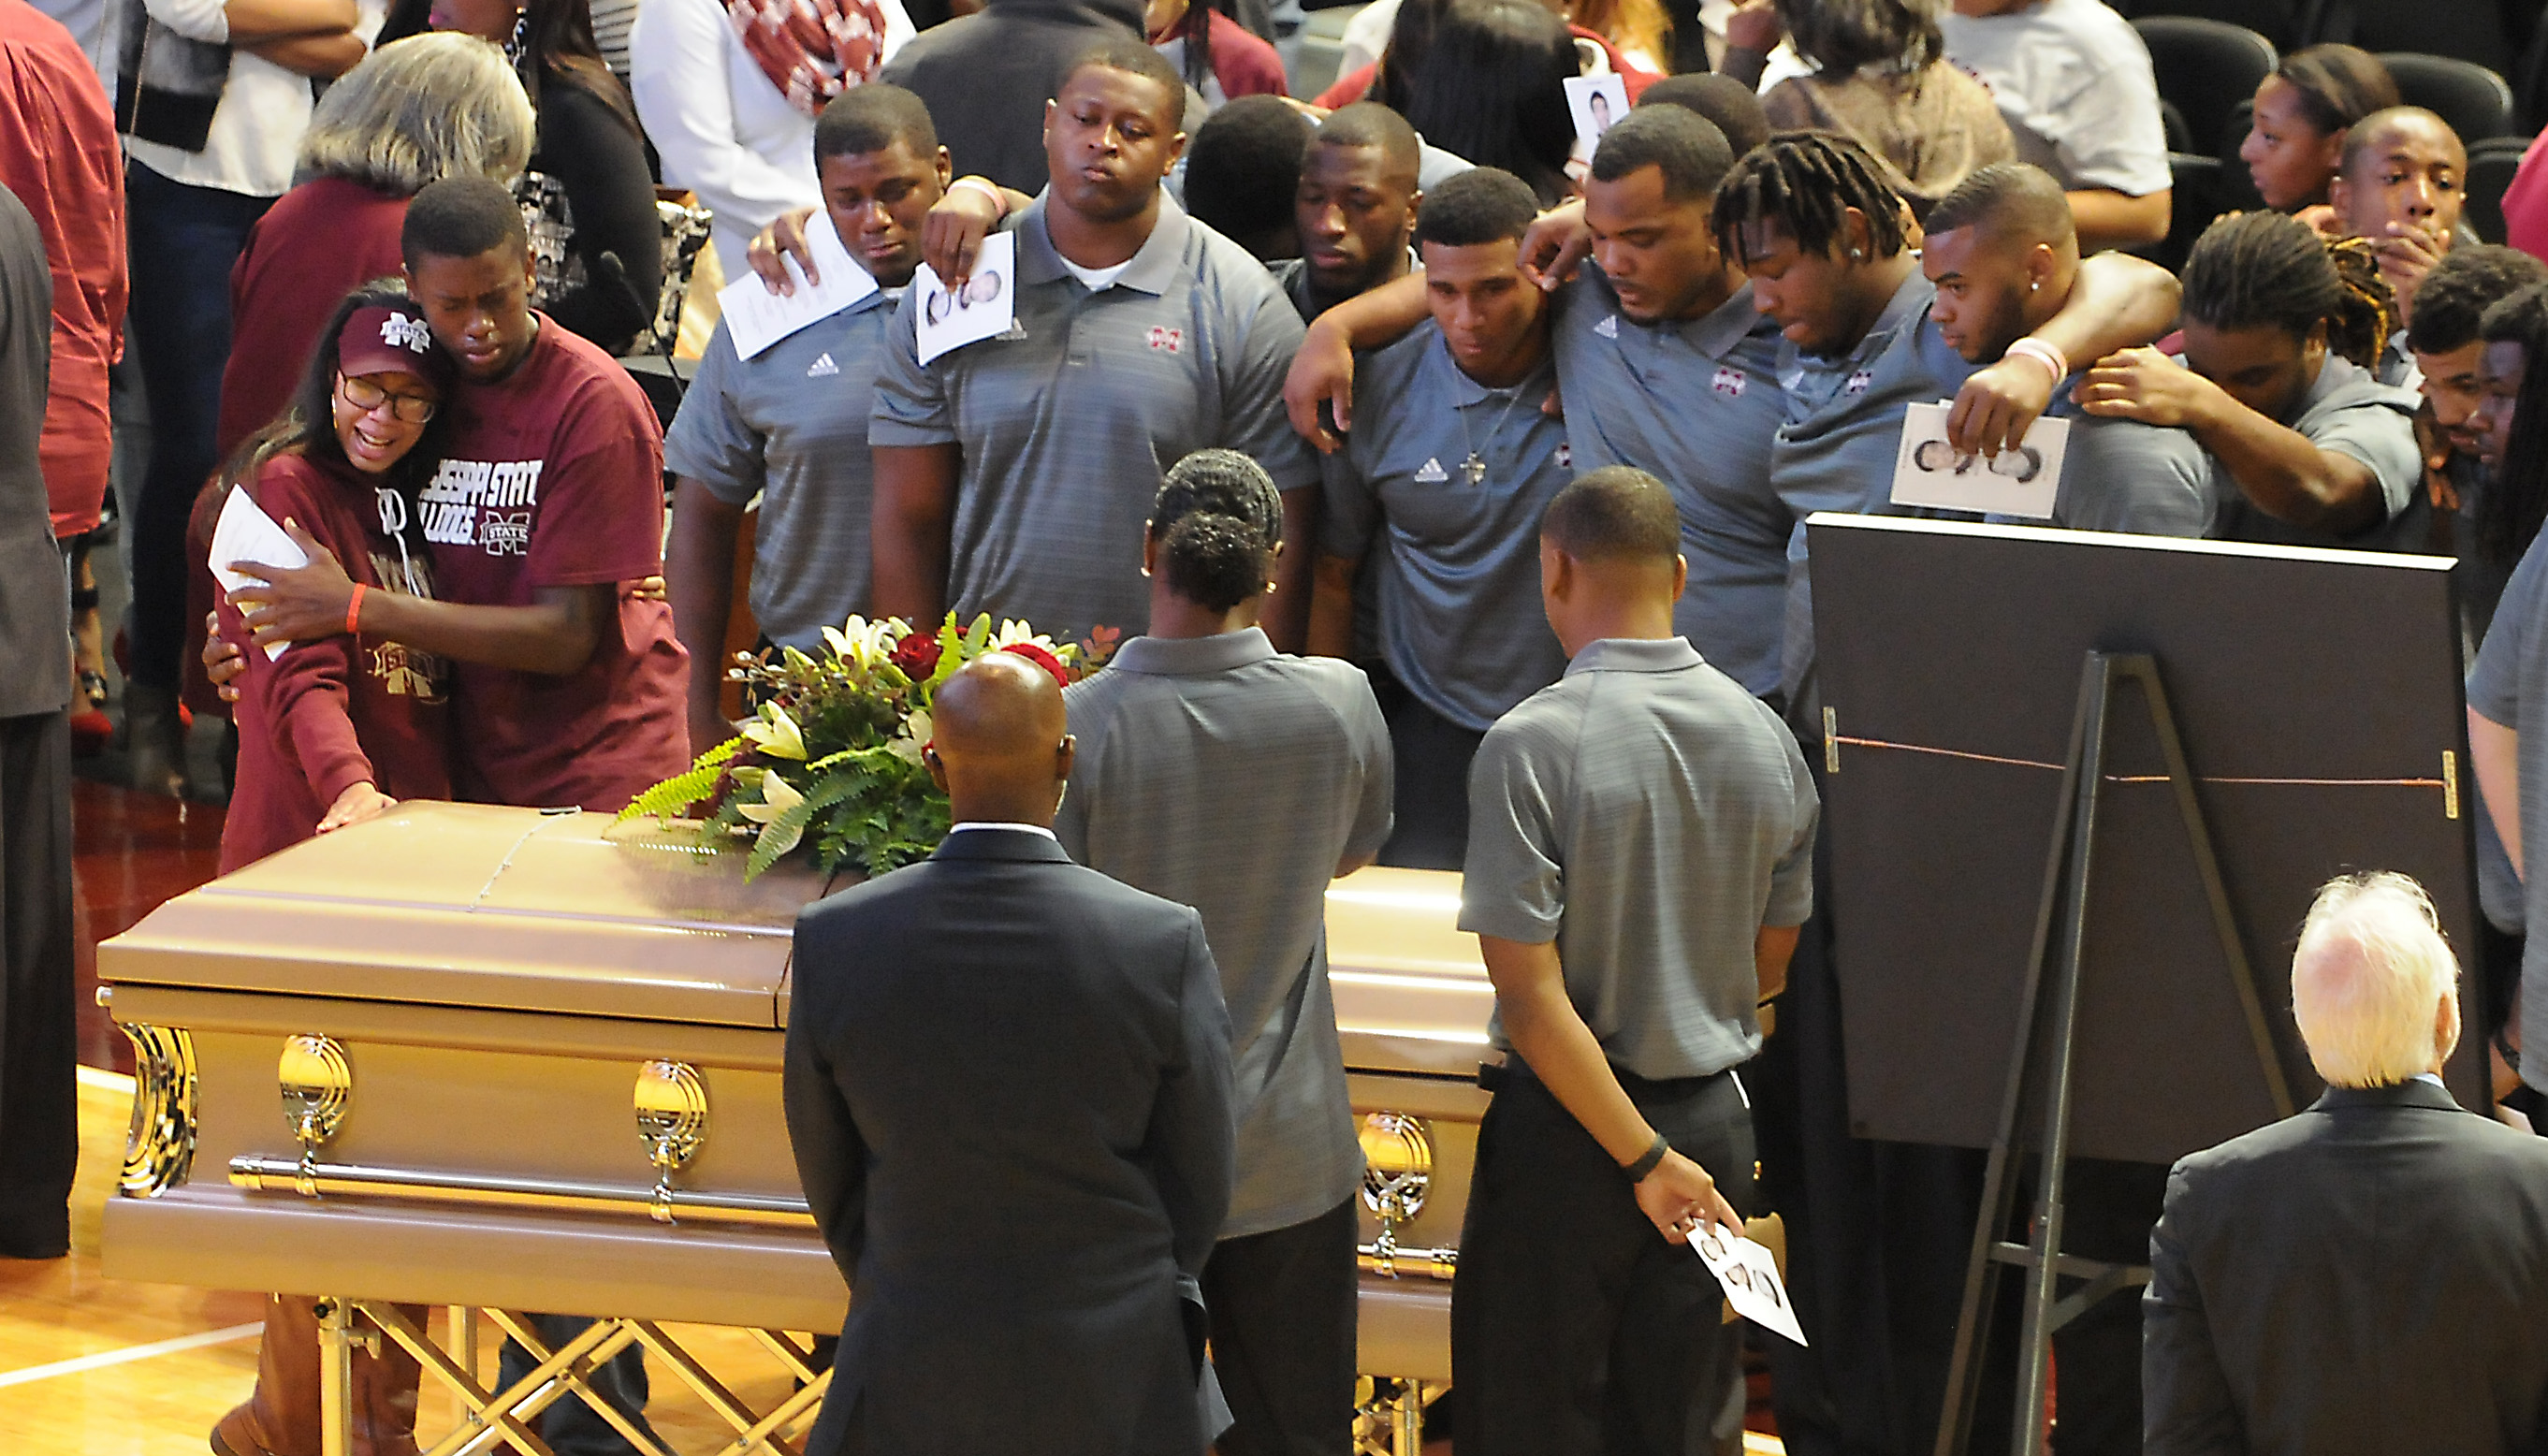 Mississippi State football team members (all in short sleeve grey shirts) gather around the casket of Keith Joseph Jr., following his memorial service at Mississippi State University on Thursday, Nov. 12, 2015,  in Starkville,  Miss. Mississippi State hos